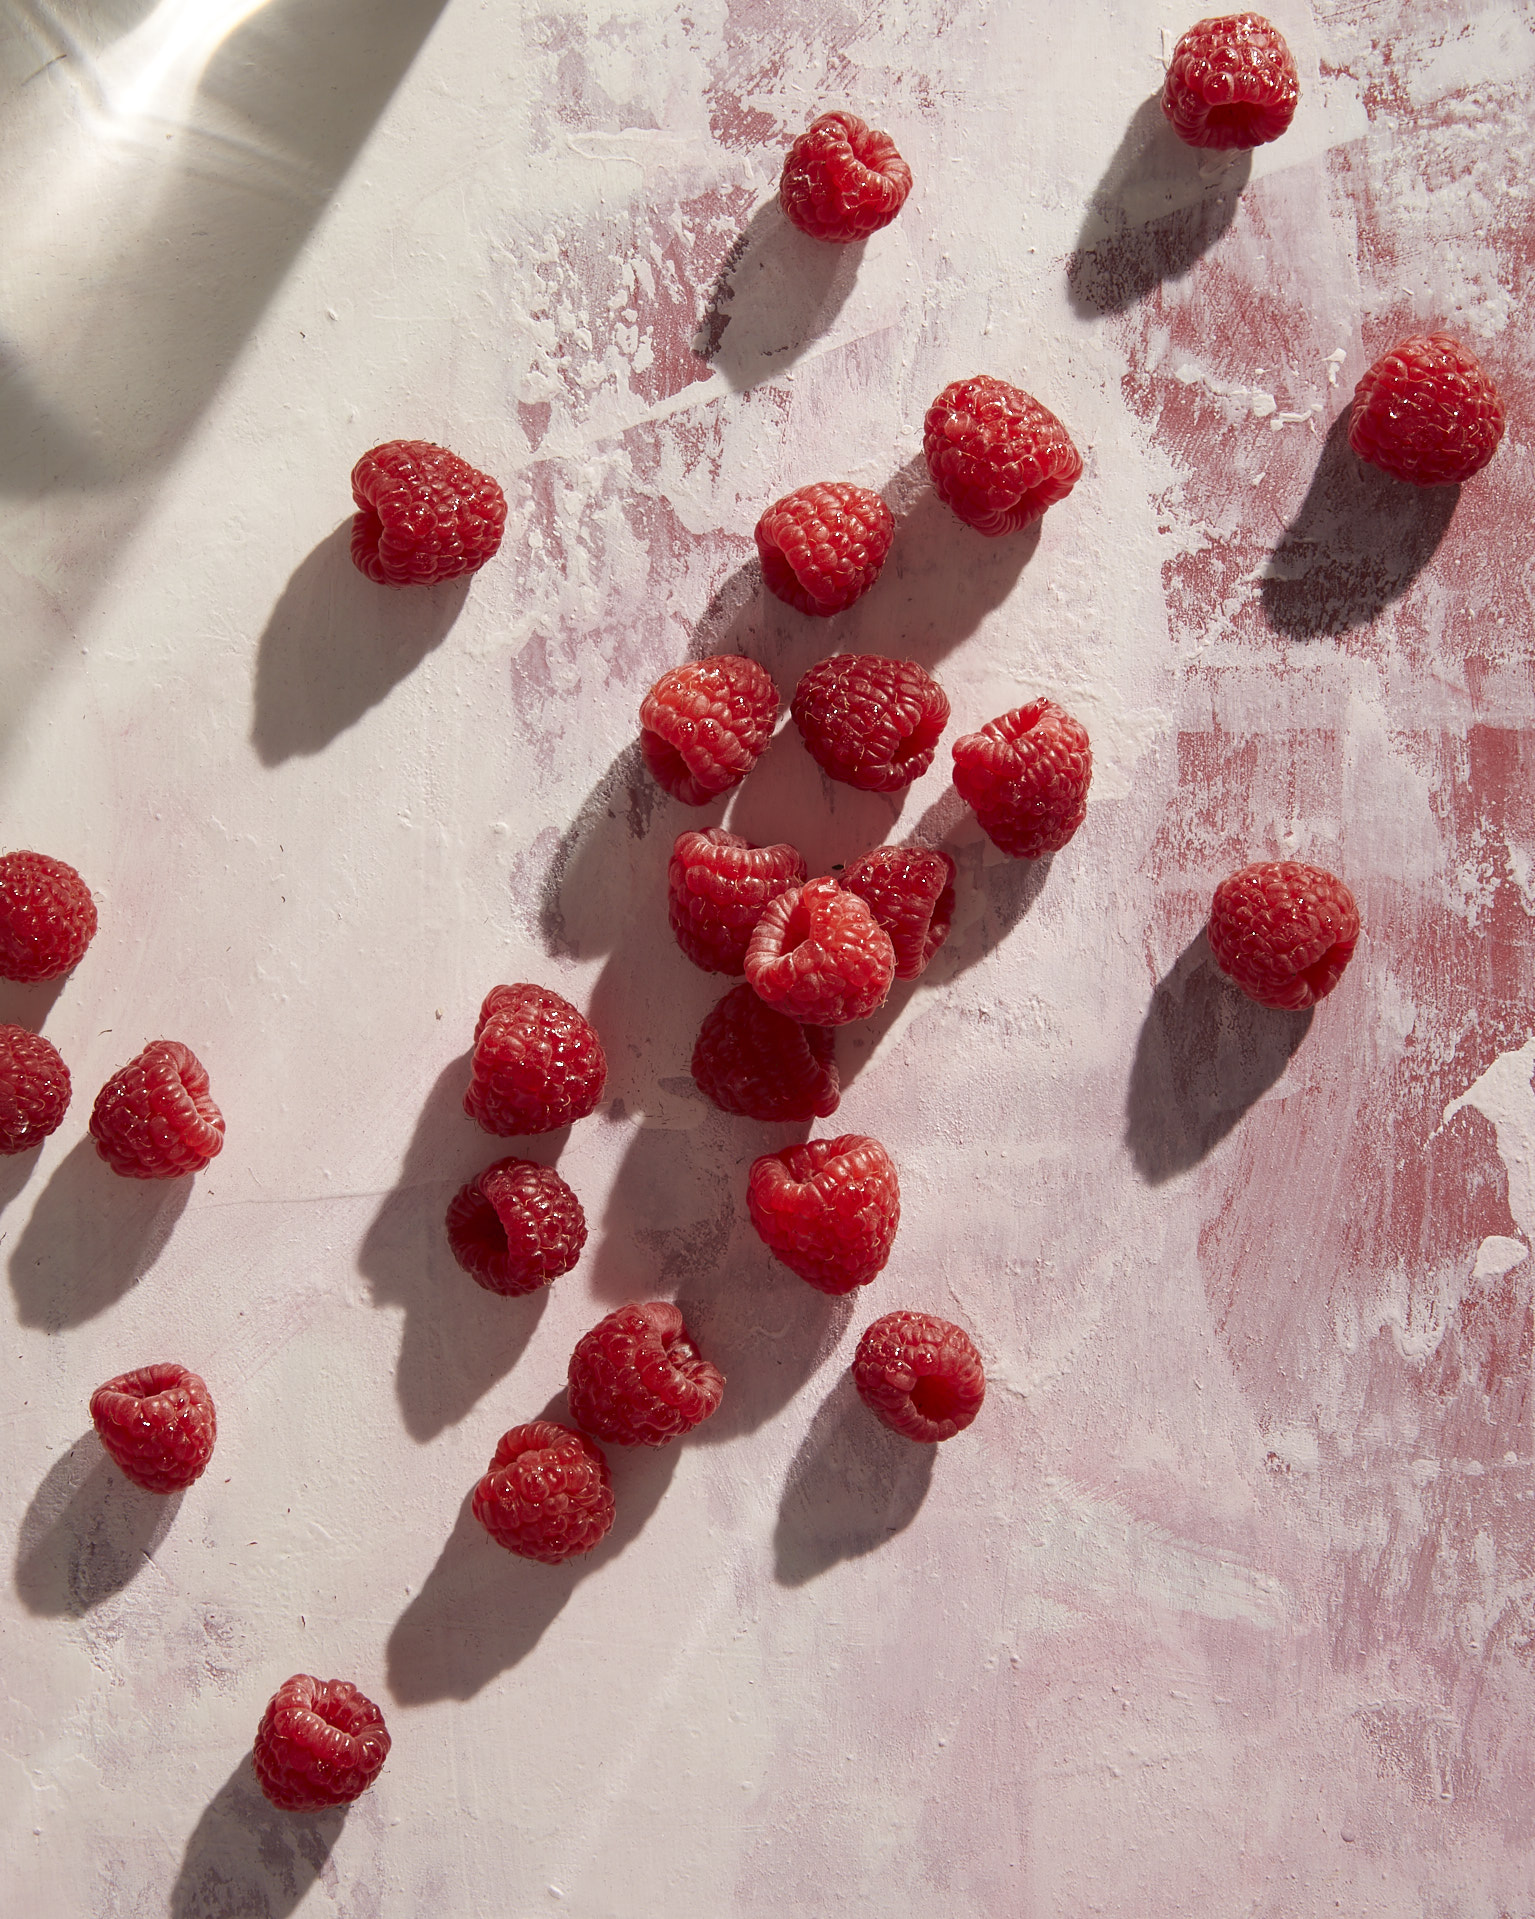 The Health Benefits of Raspberries You Need to Know About